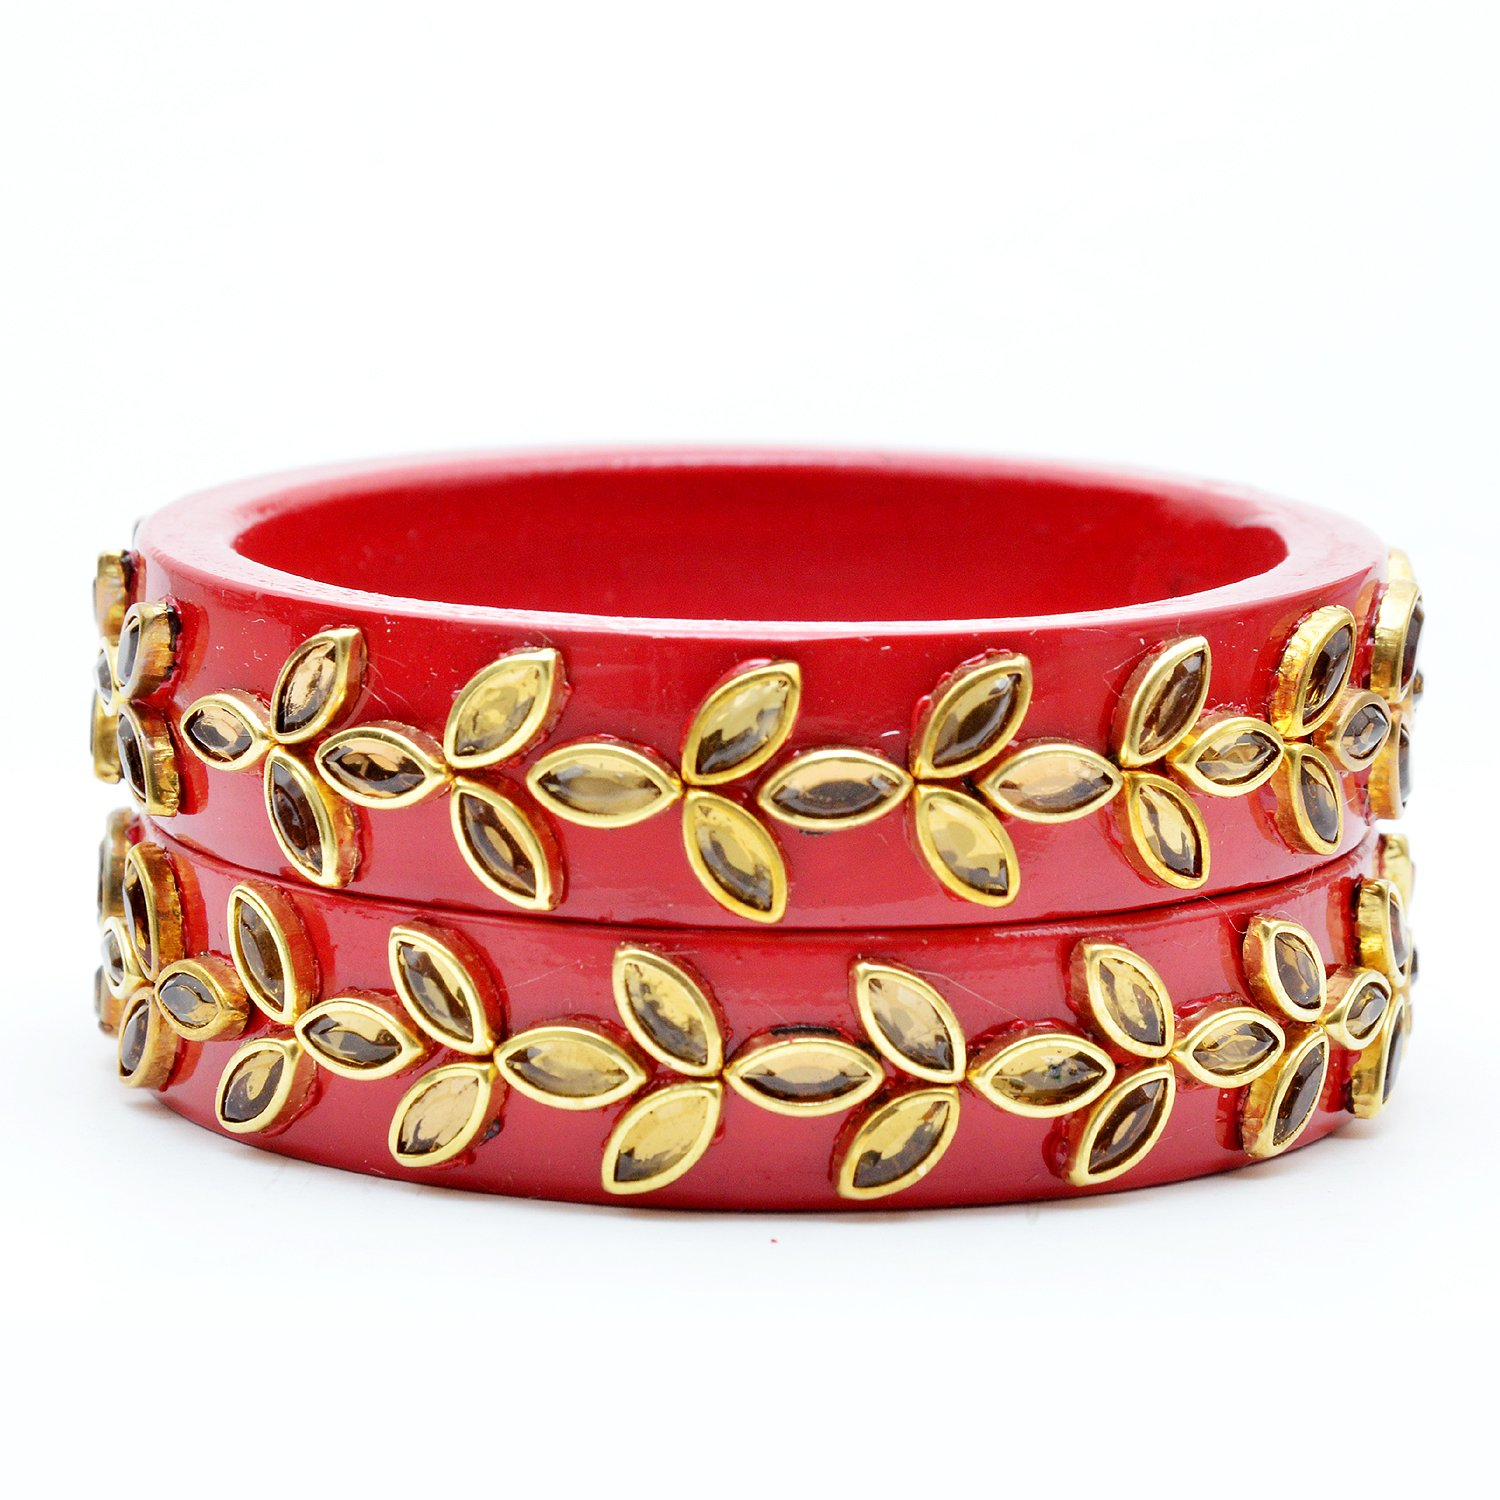 kashmir bronze thick vavavida leaf products bangles blue edit img